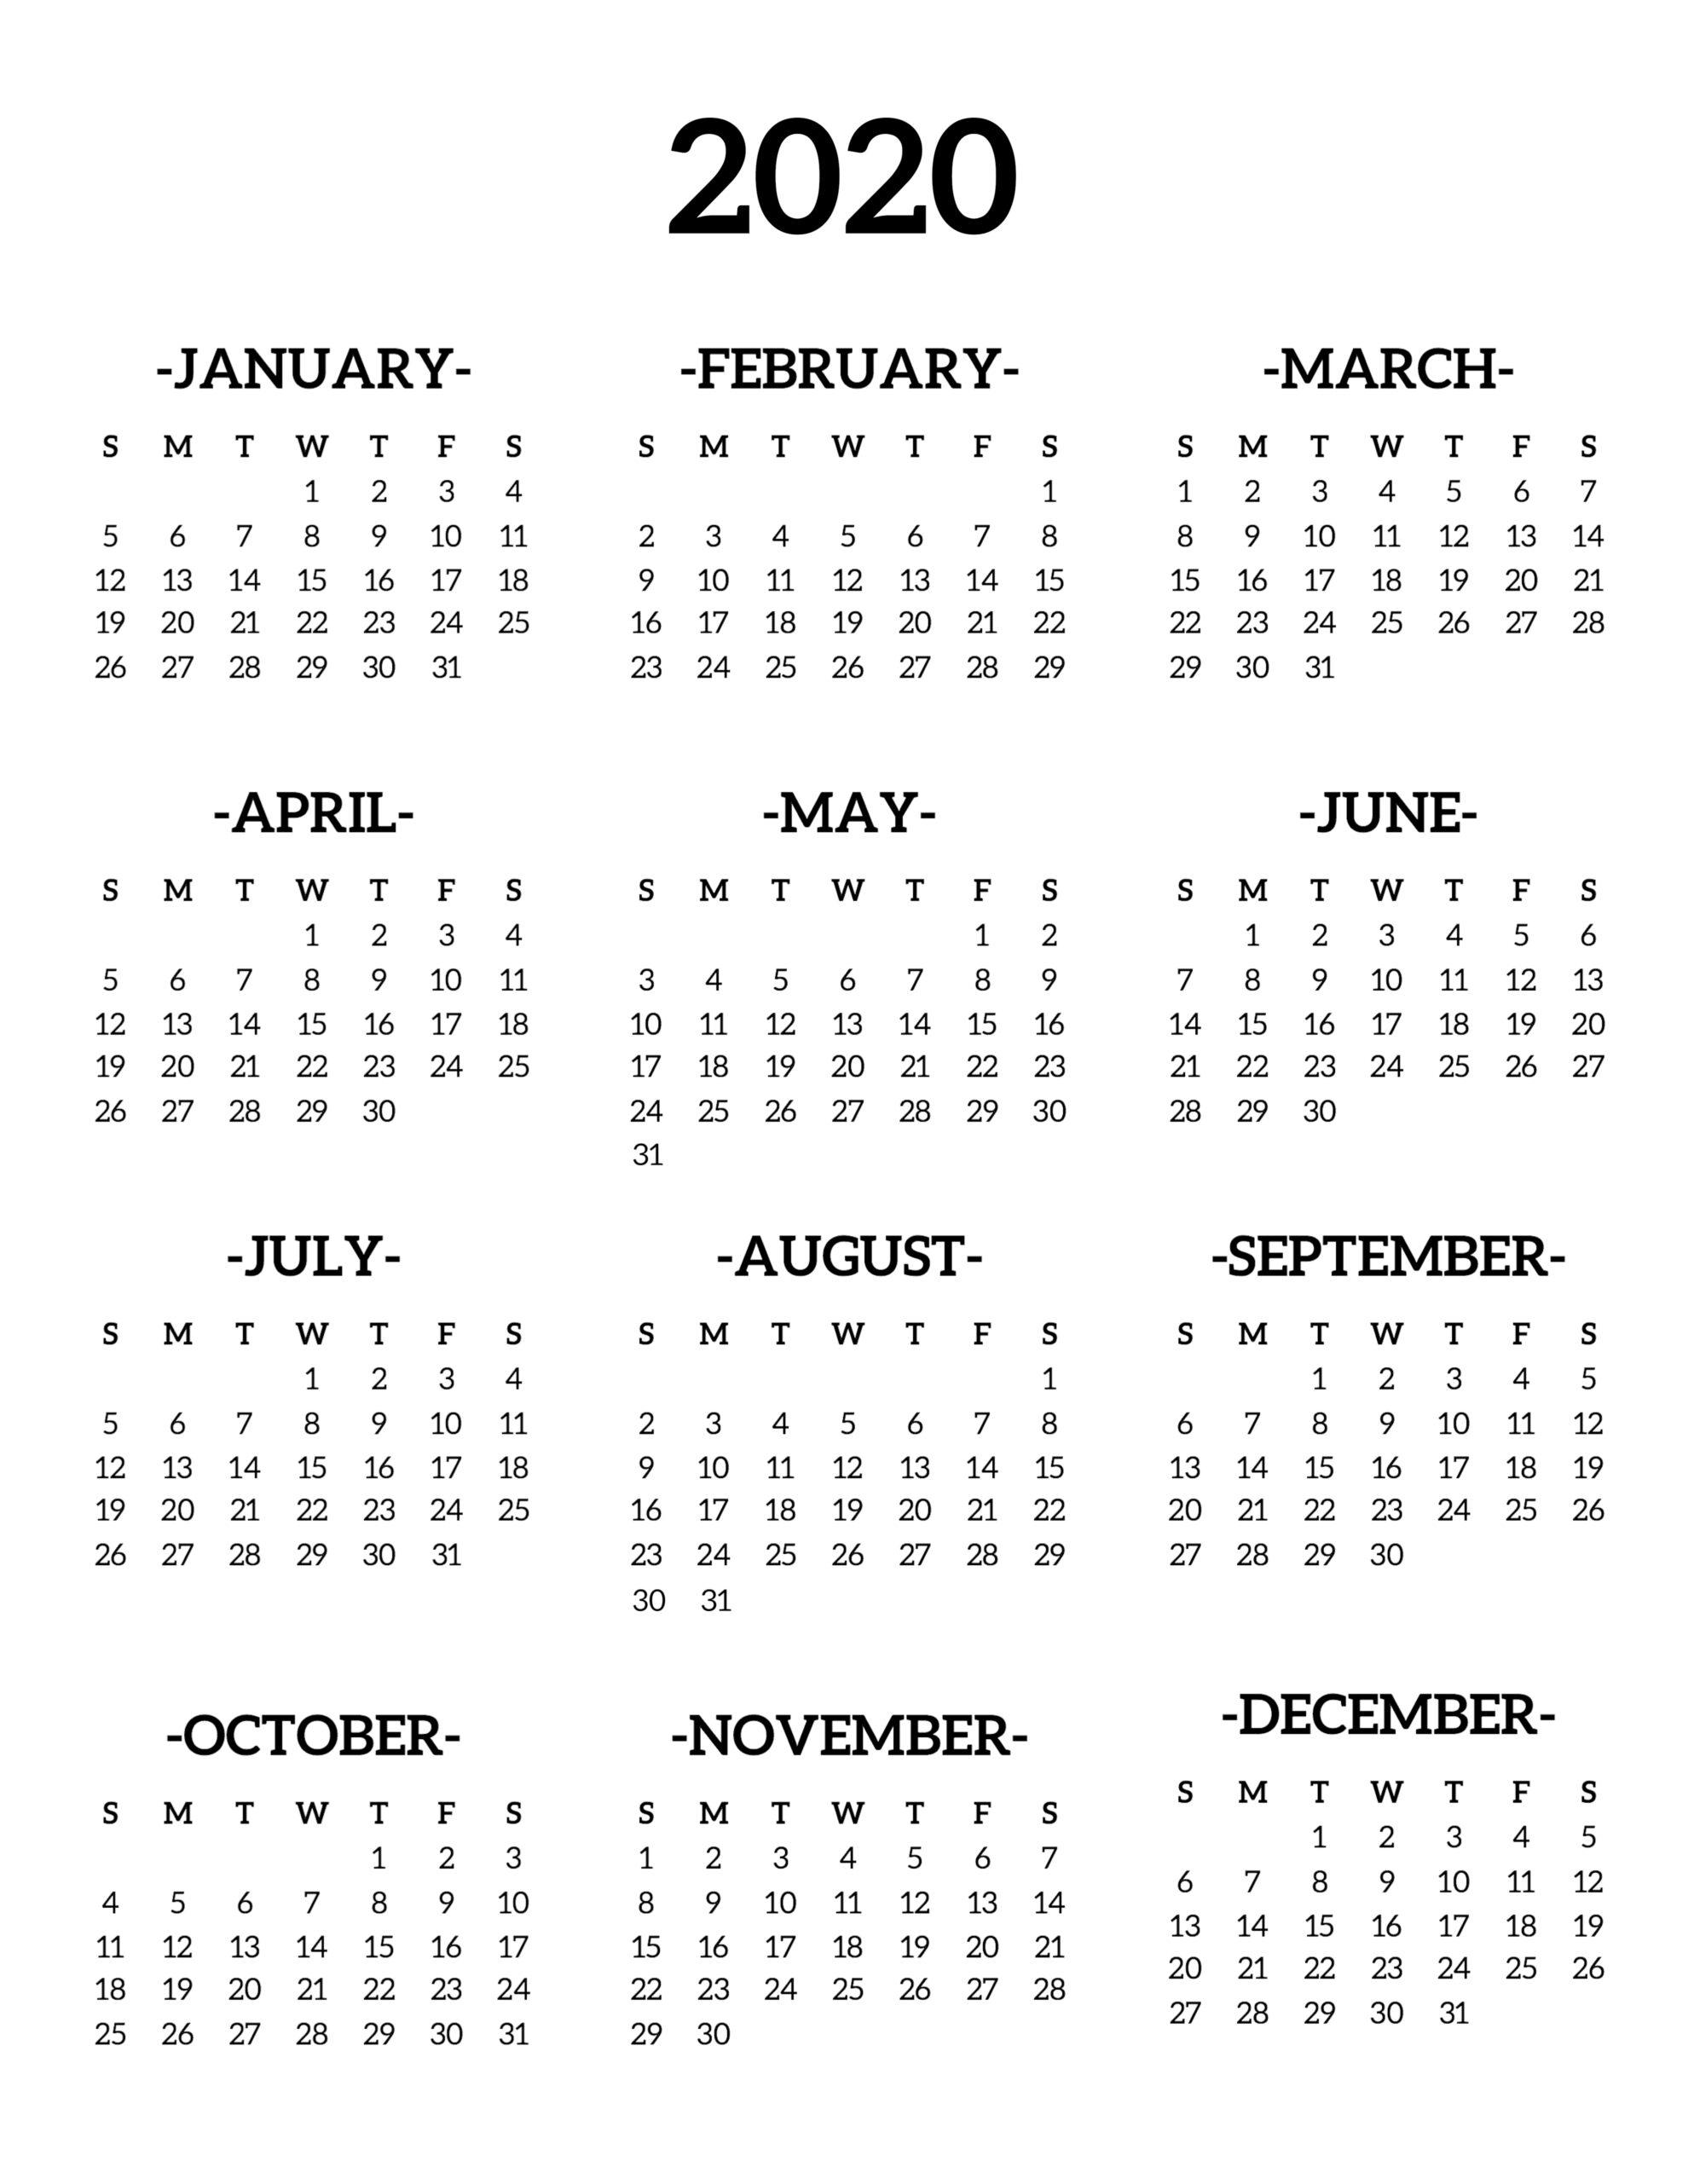 Calendar Print Out 2020 Calendar 2020 Printable One Page   Paper Trail Design